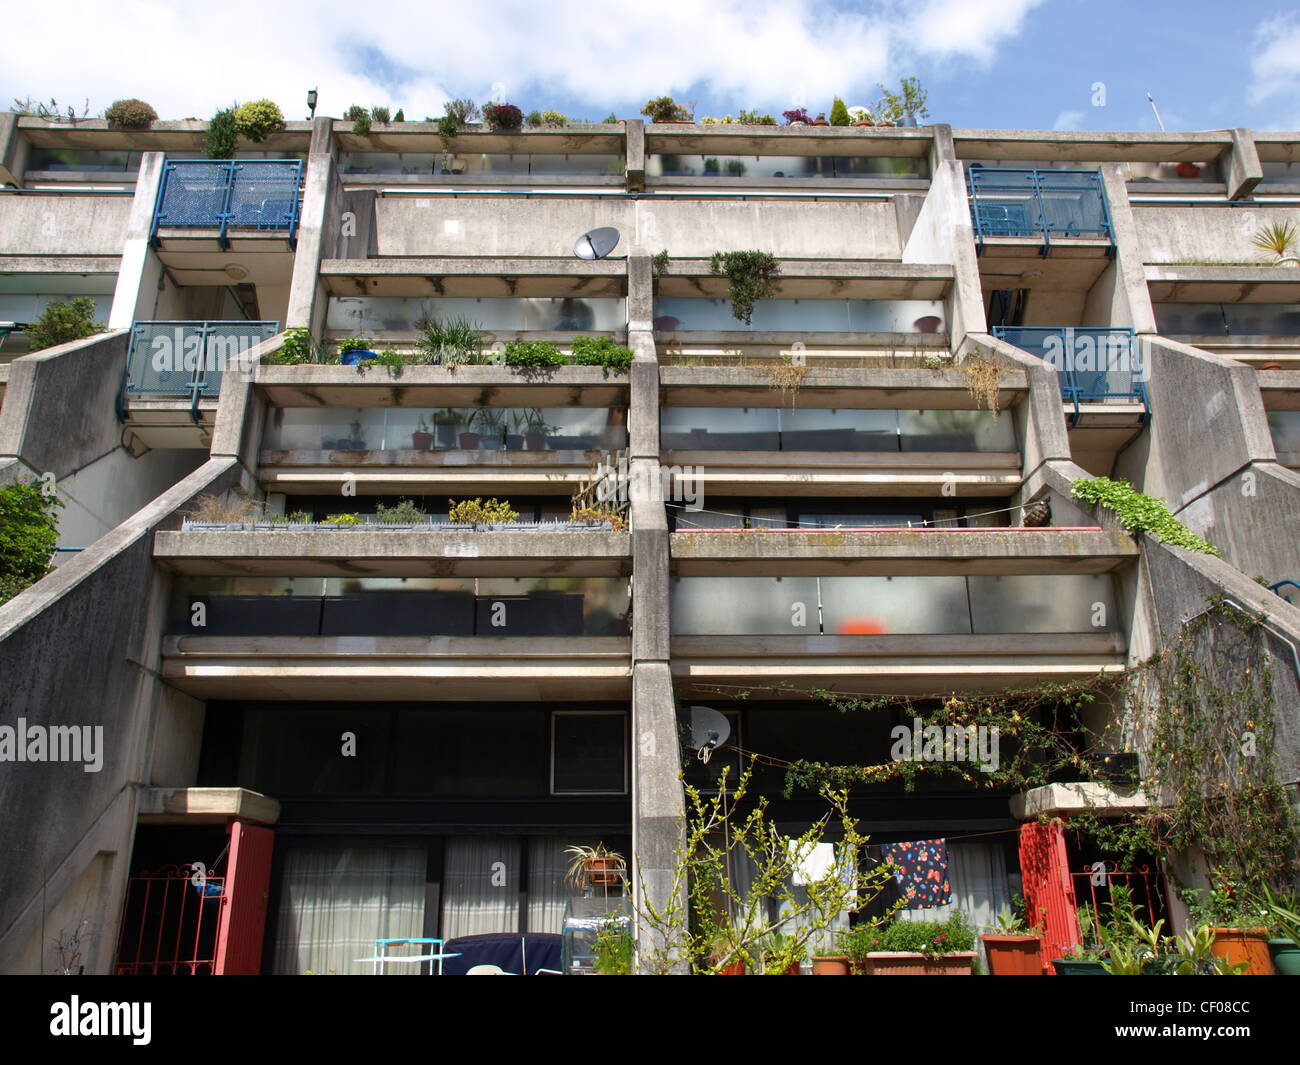 Alexandra Road housing estate iconic new brutalist architecture in London, England, UK Stock Photo